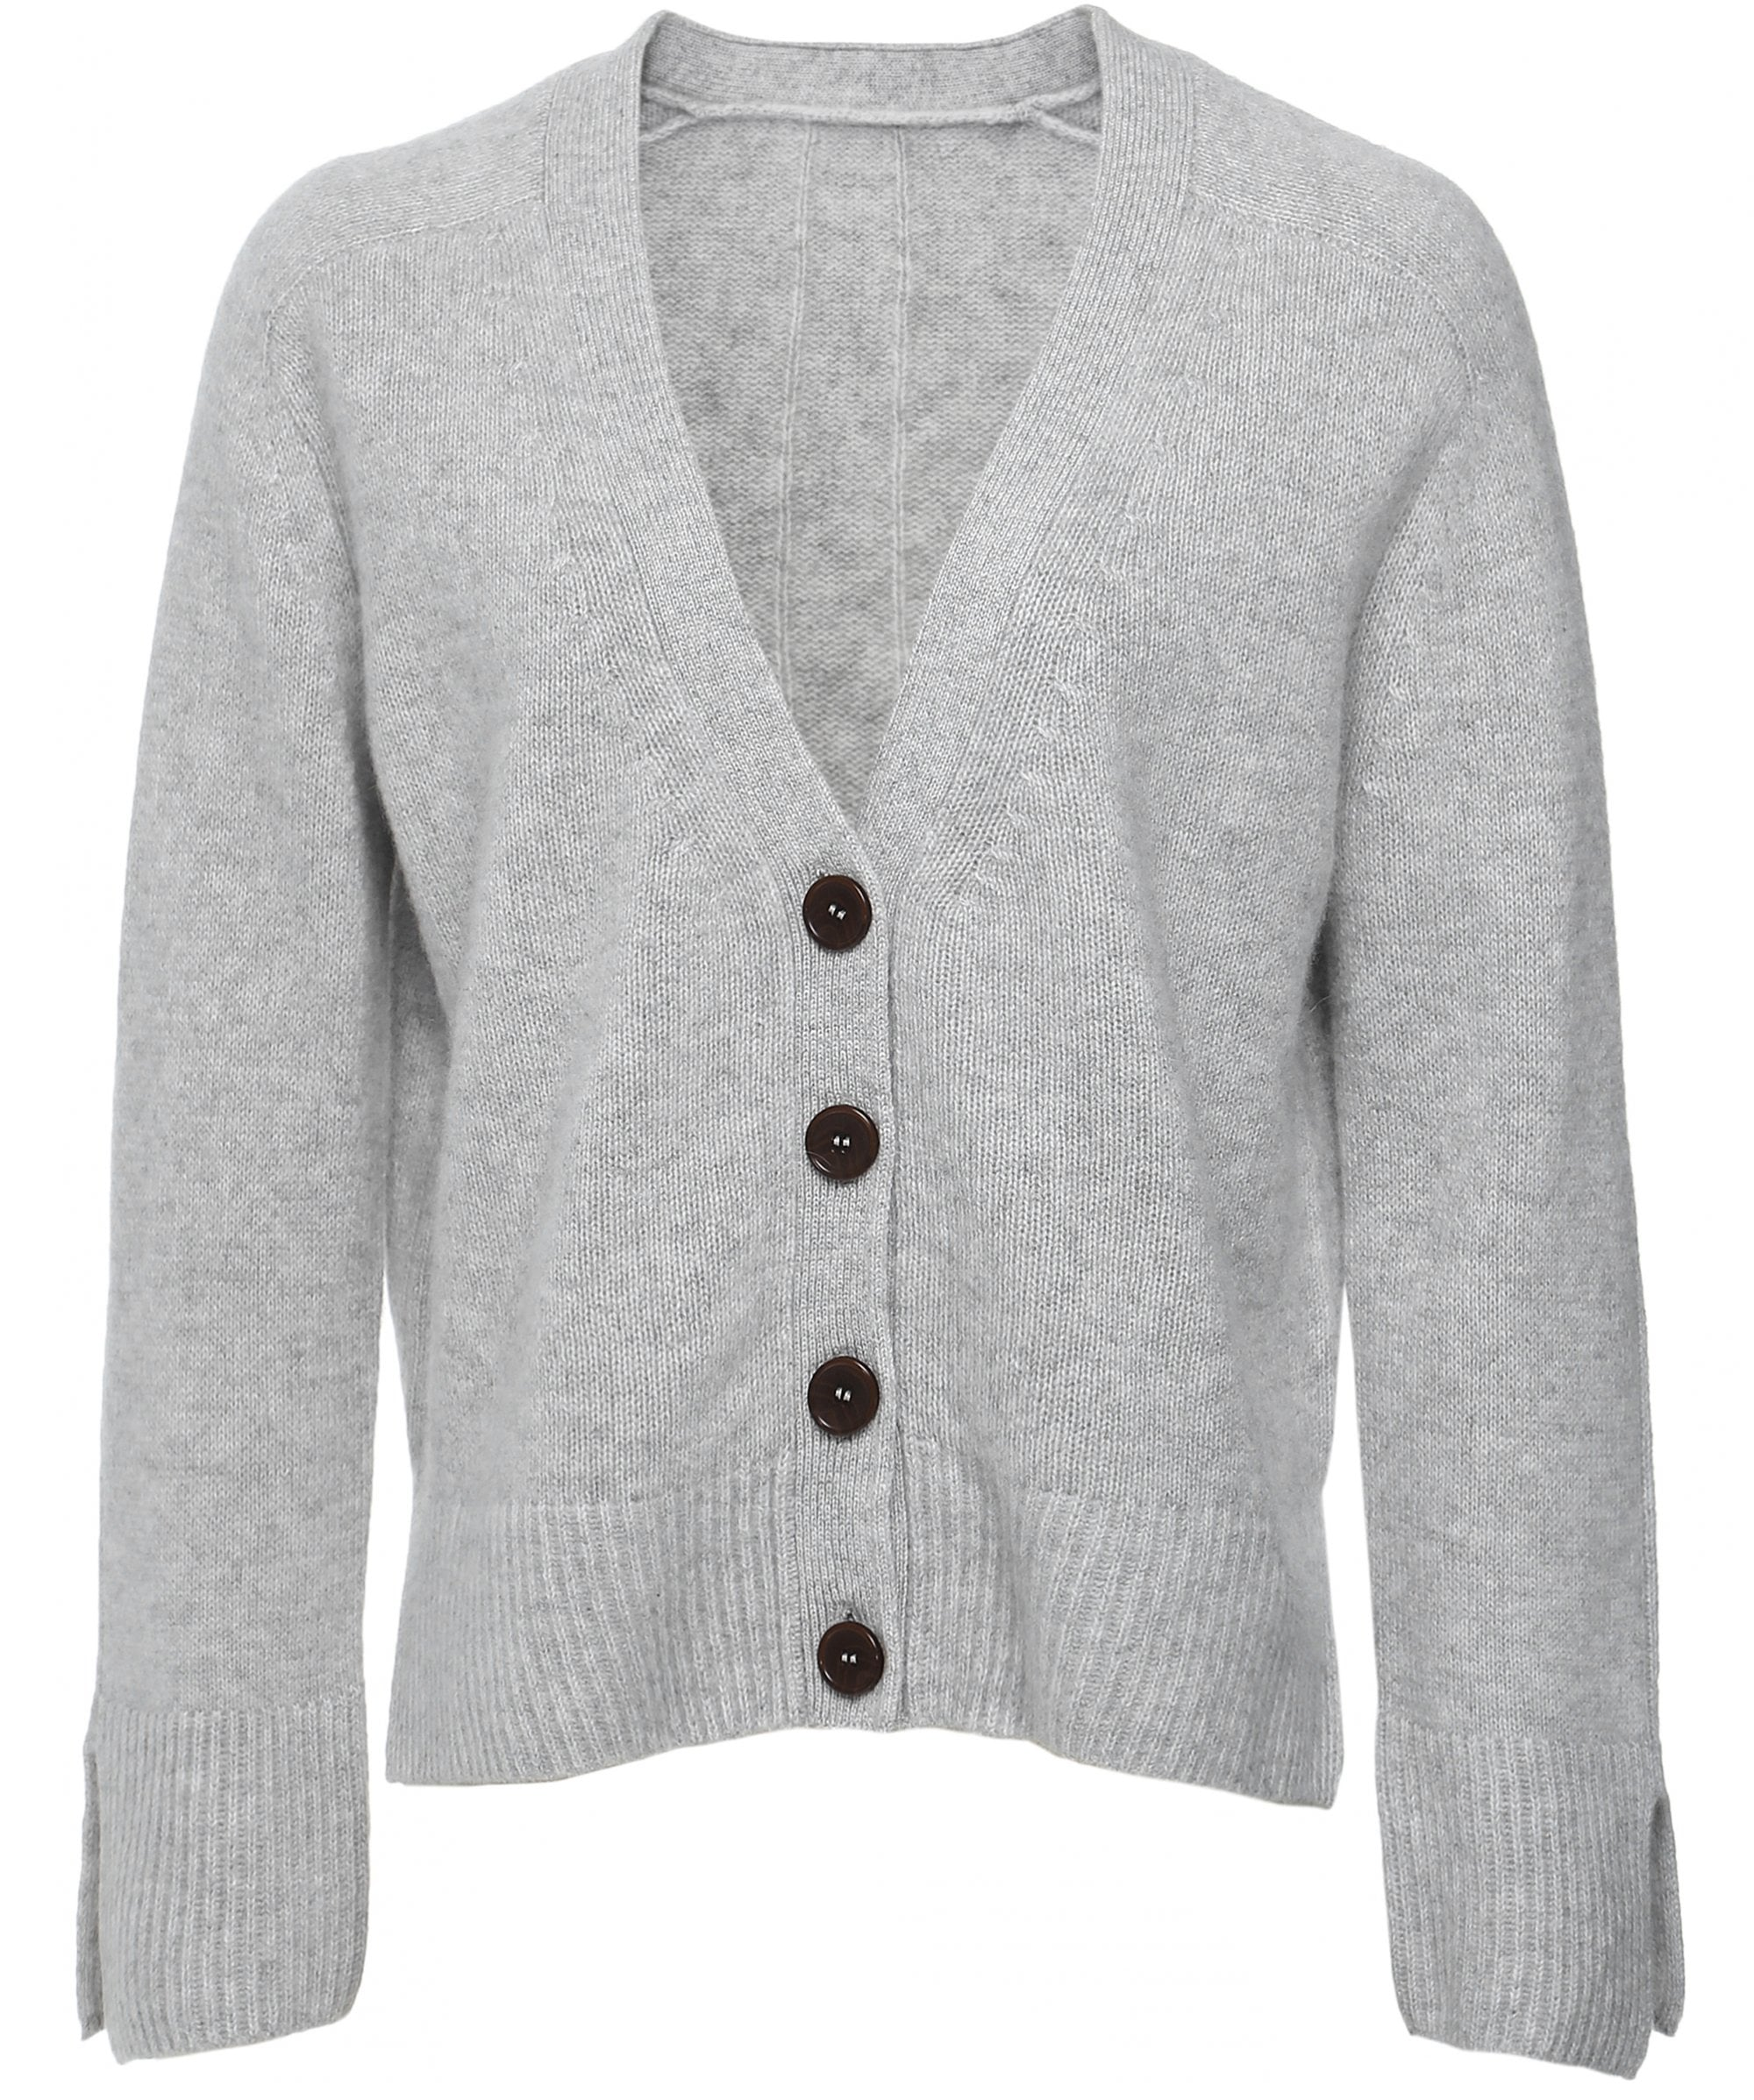 This is an image of a grey cashmere cardigan with button up fastening